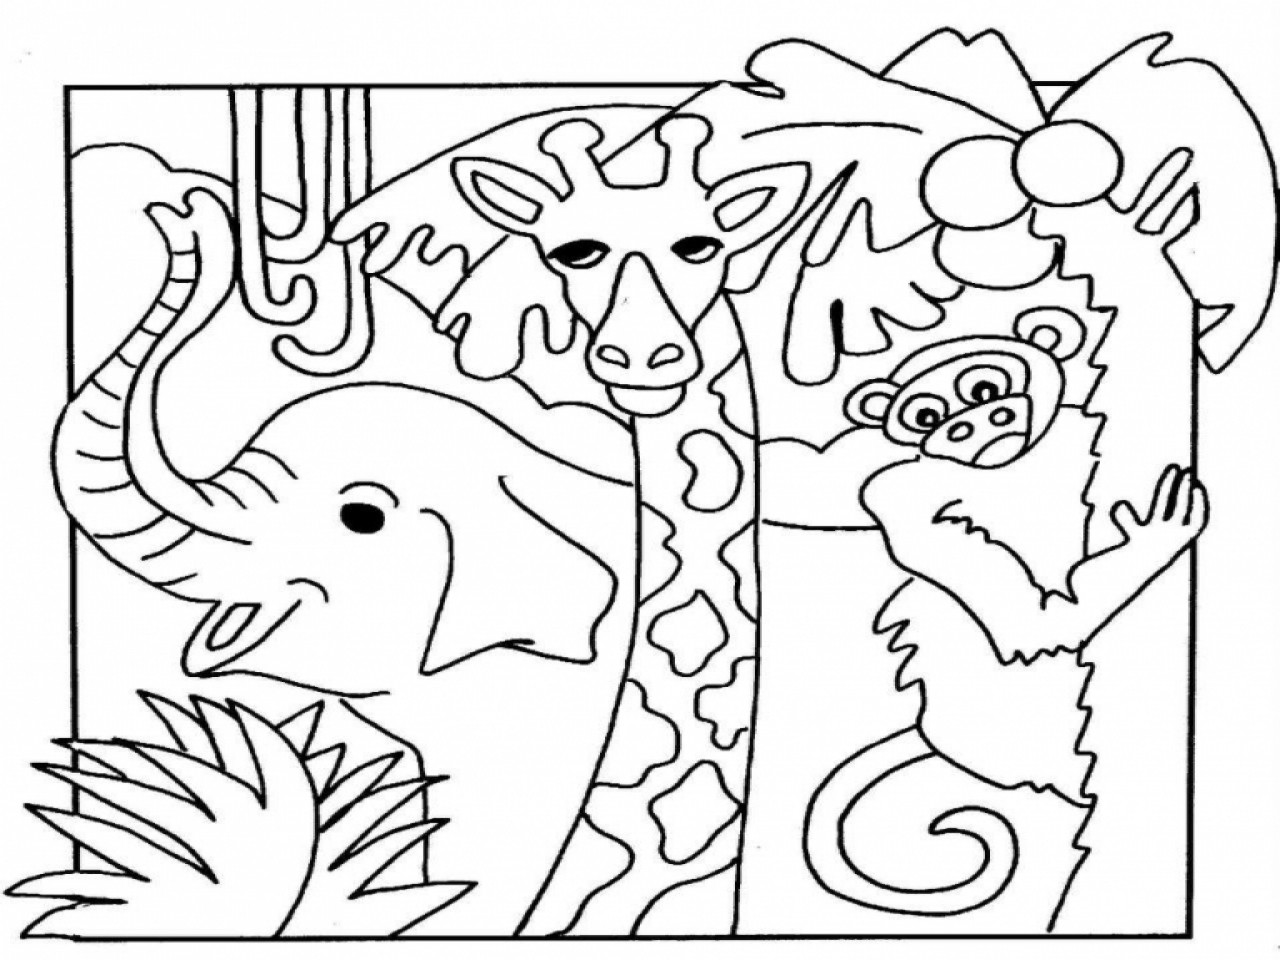 Best ideas about Zoo Animals Printable Coloring Pages . Save or Pin Zoo Animal Coloring Pages coloringsuite Now.